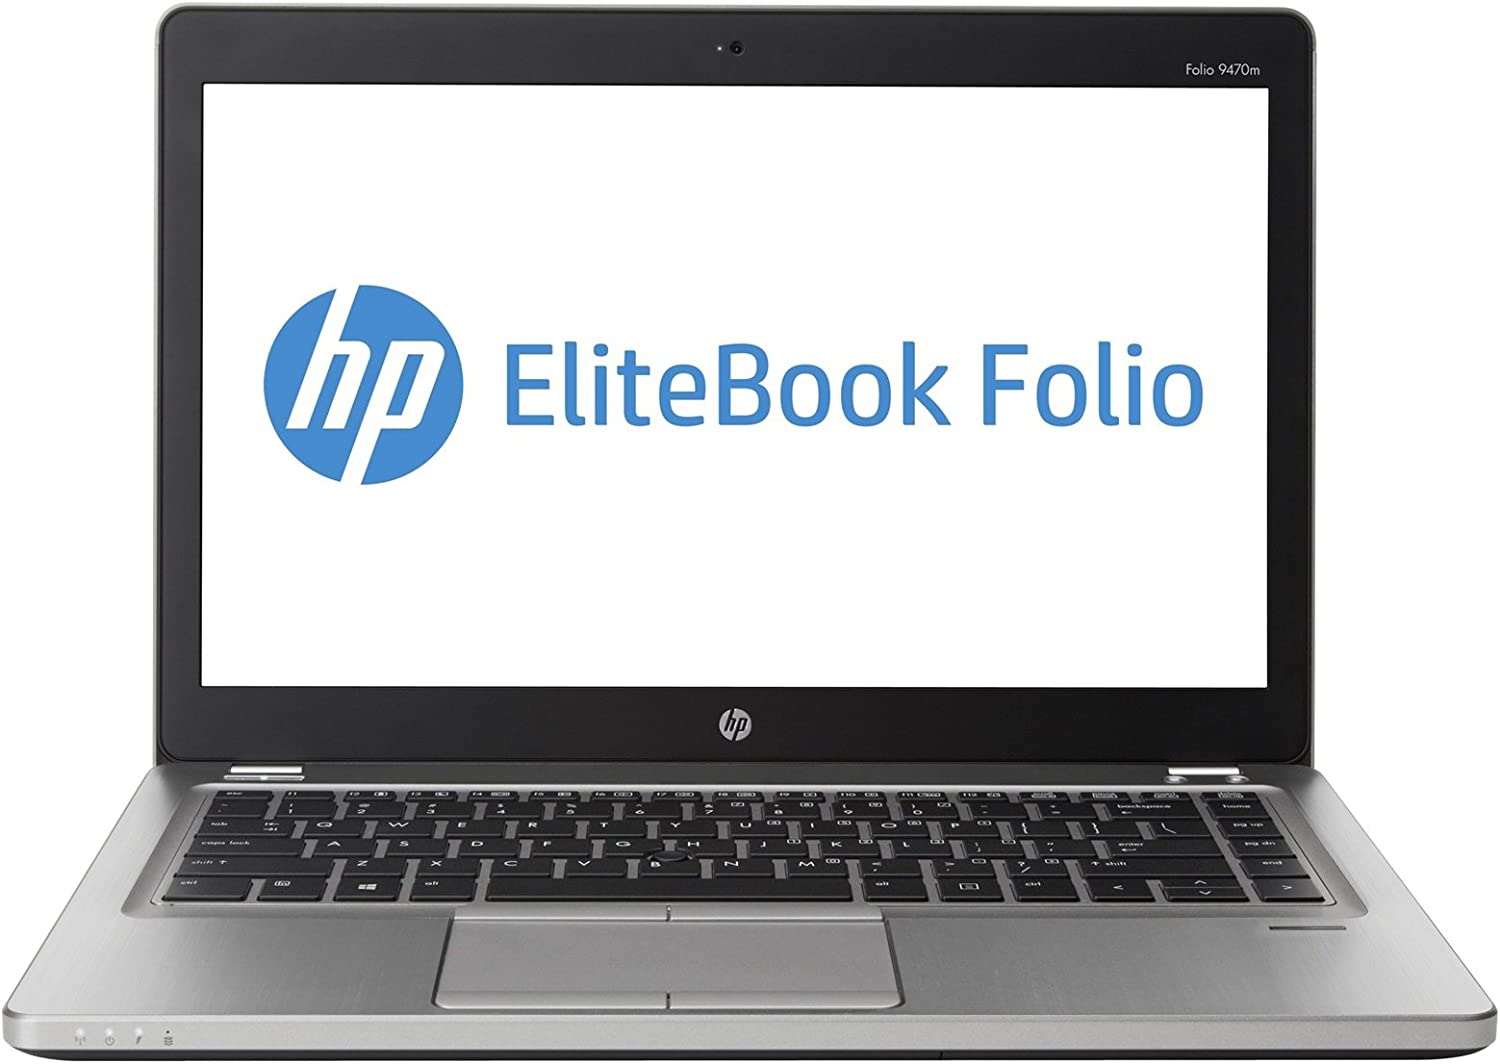 HP EliteBook Folio 9470M 14in LED-backlit HD Business Laptop Computer, Intel Dual-Core i7-3667U Up to 3.2Ghz, 8GB RAM, 256GB SSD, VGA, Webcam, Windows 10 Professional (Renewed)